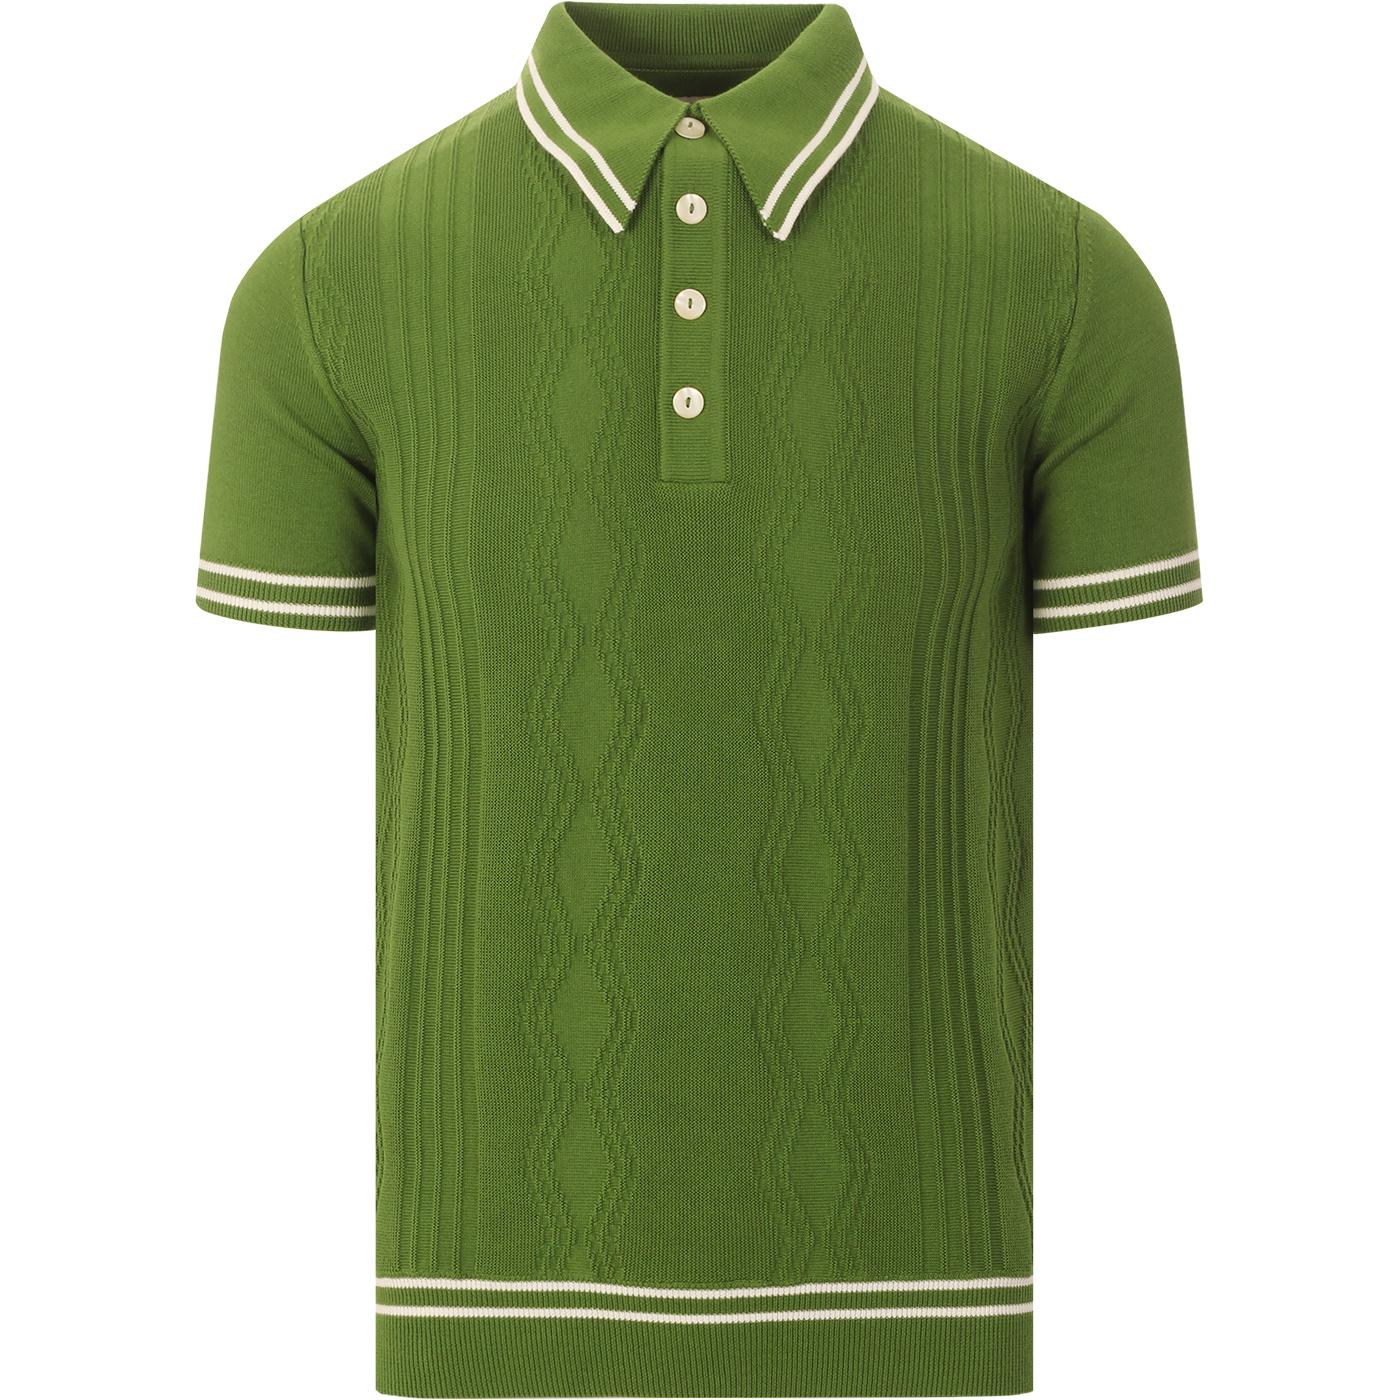 SKA & SOUL Mod Bold Tipped Cable Knit Polo (Green)